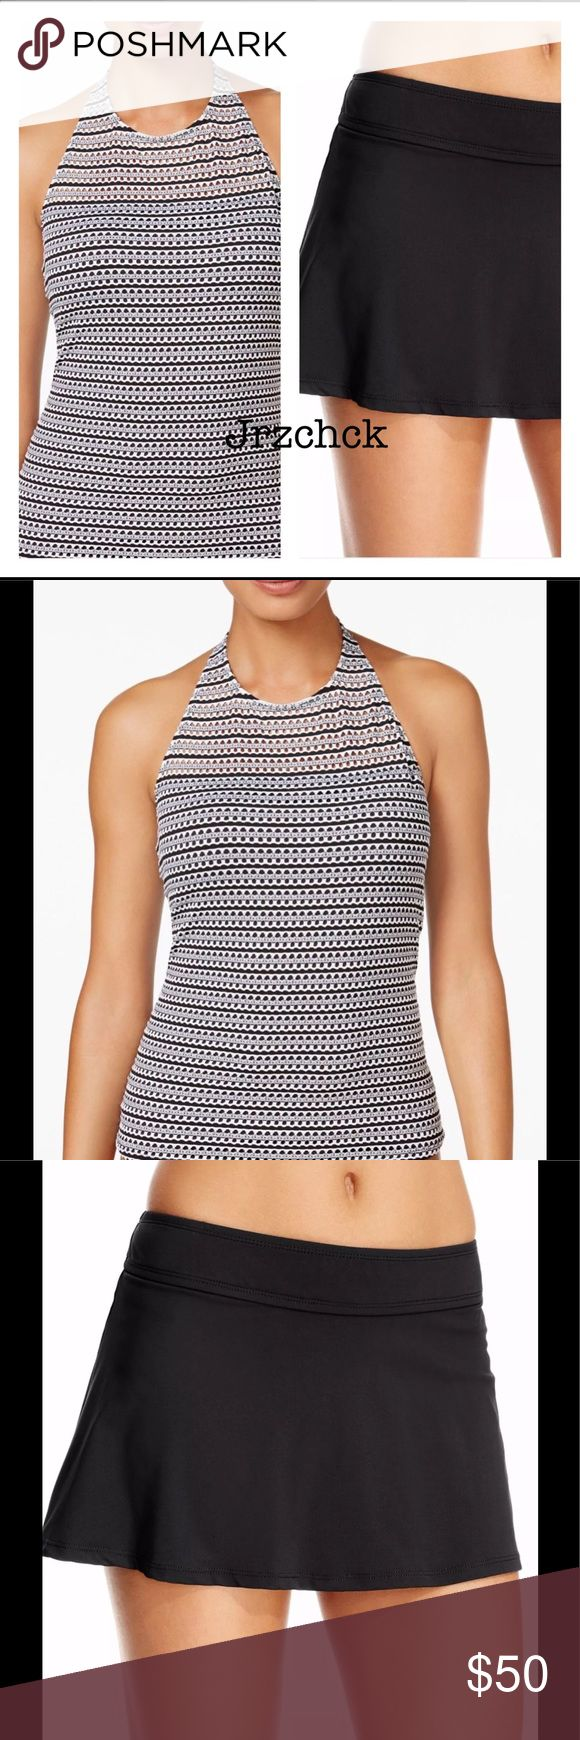 NWT Anne Cole Halter Skirt Tankini Swim Set 2 PC Higher neckline. Hooks at neck. Fully lined. Built in shelf bra with removable soft pads. Skirted bottoms.   Black and white.  Brand new with tags. Anne Cole Swim Bikinis